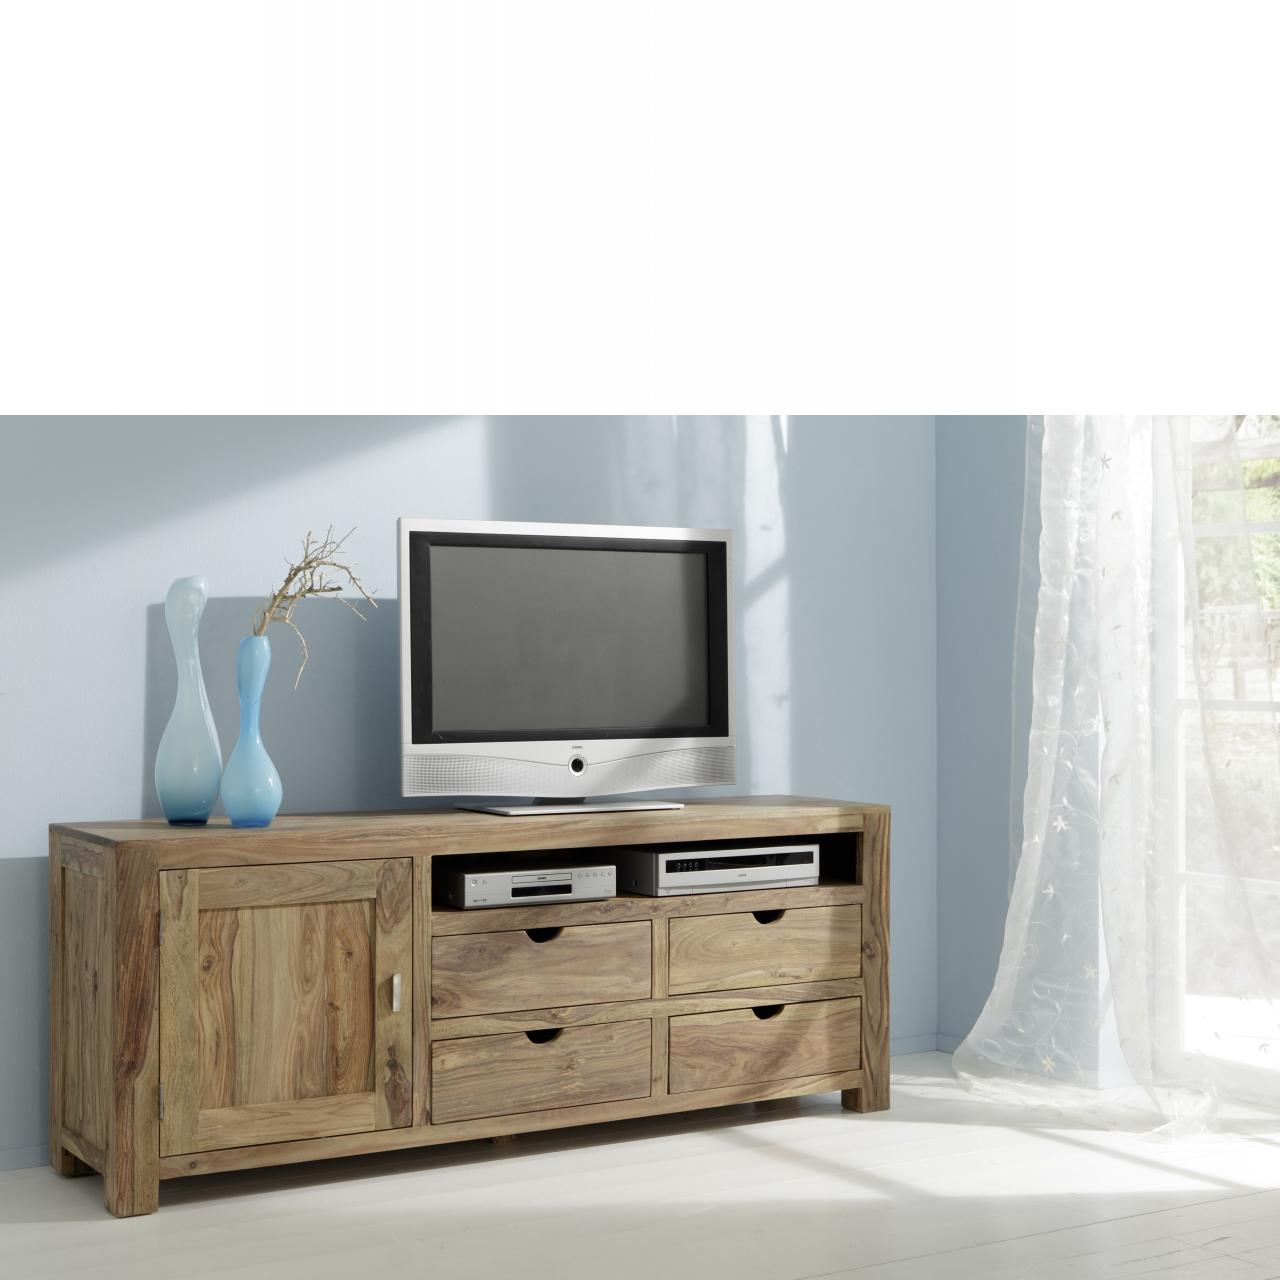 tv lowboard skandinavisch tv lowboard devonaja in wei eiche tv lowboard atlinius skandinavisch. Black Bedroom Furniture Sets. Home Design Ideas